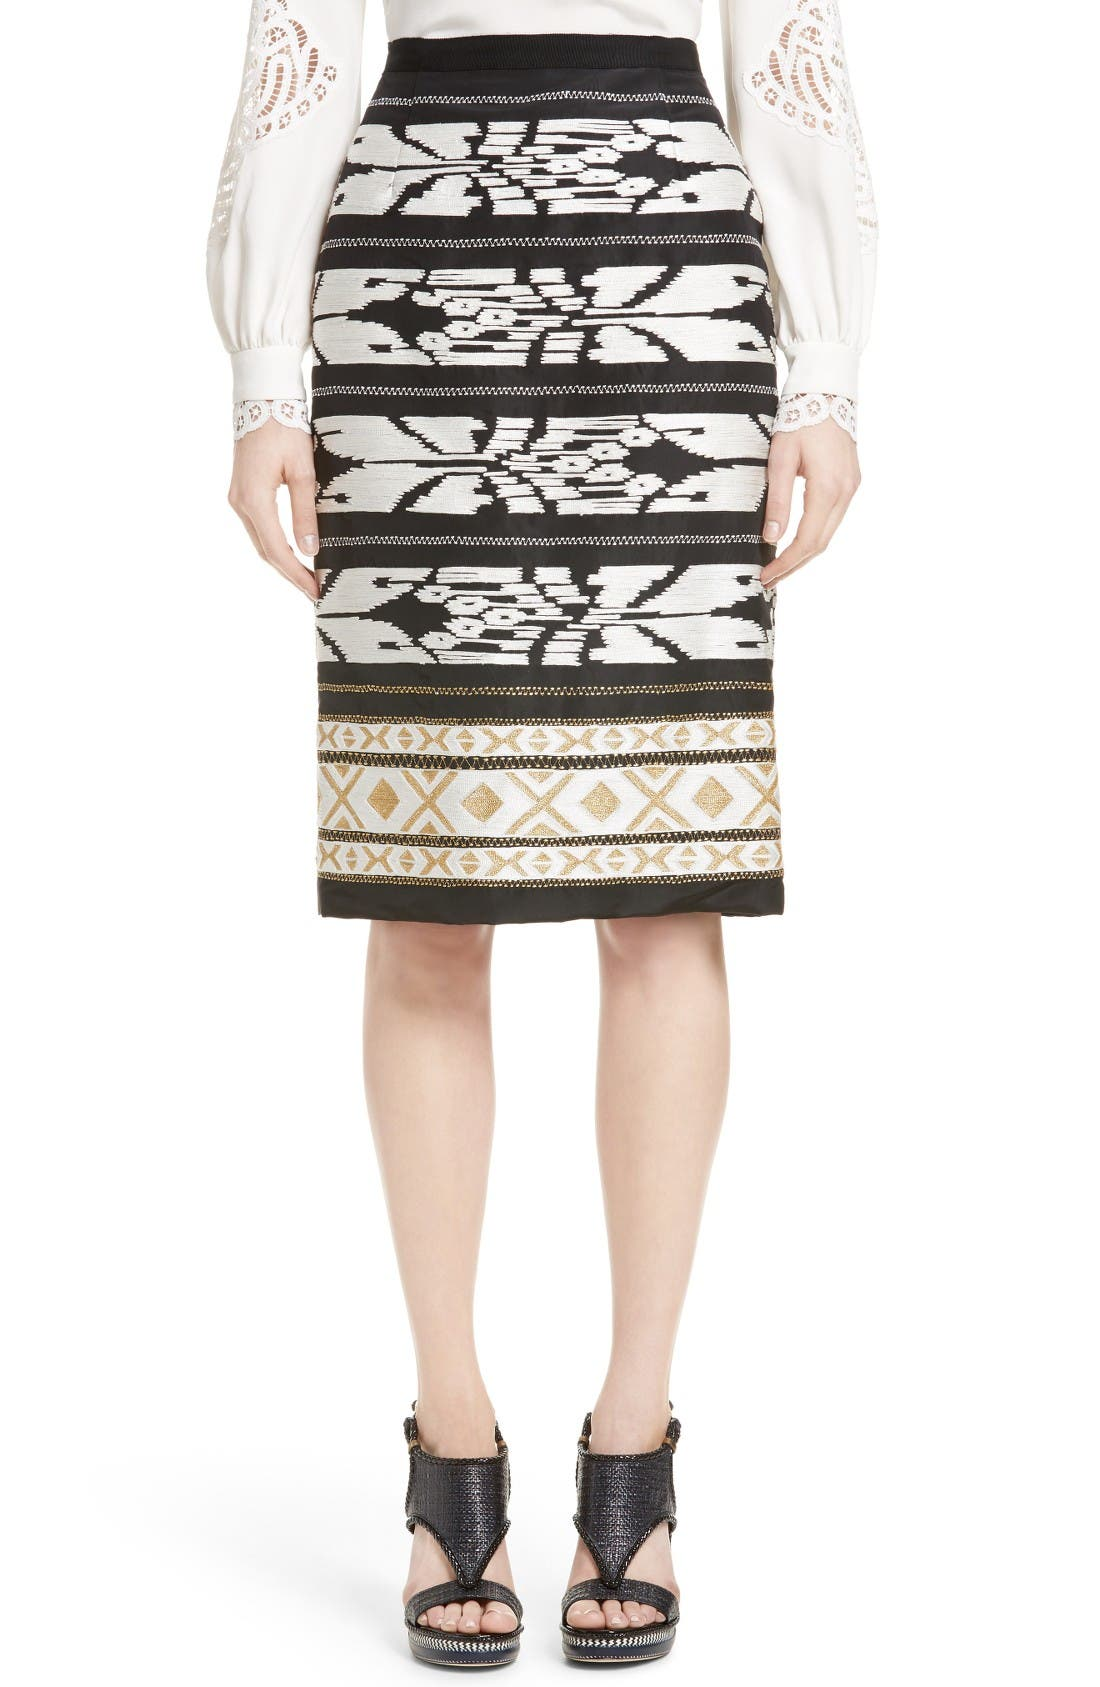 Alternate Image 1 Selected - Oscar de la Renta Ikat Embroidered Pencil Skirt